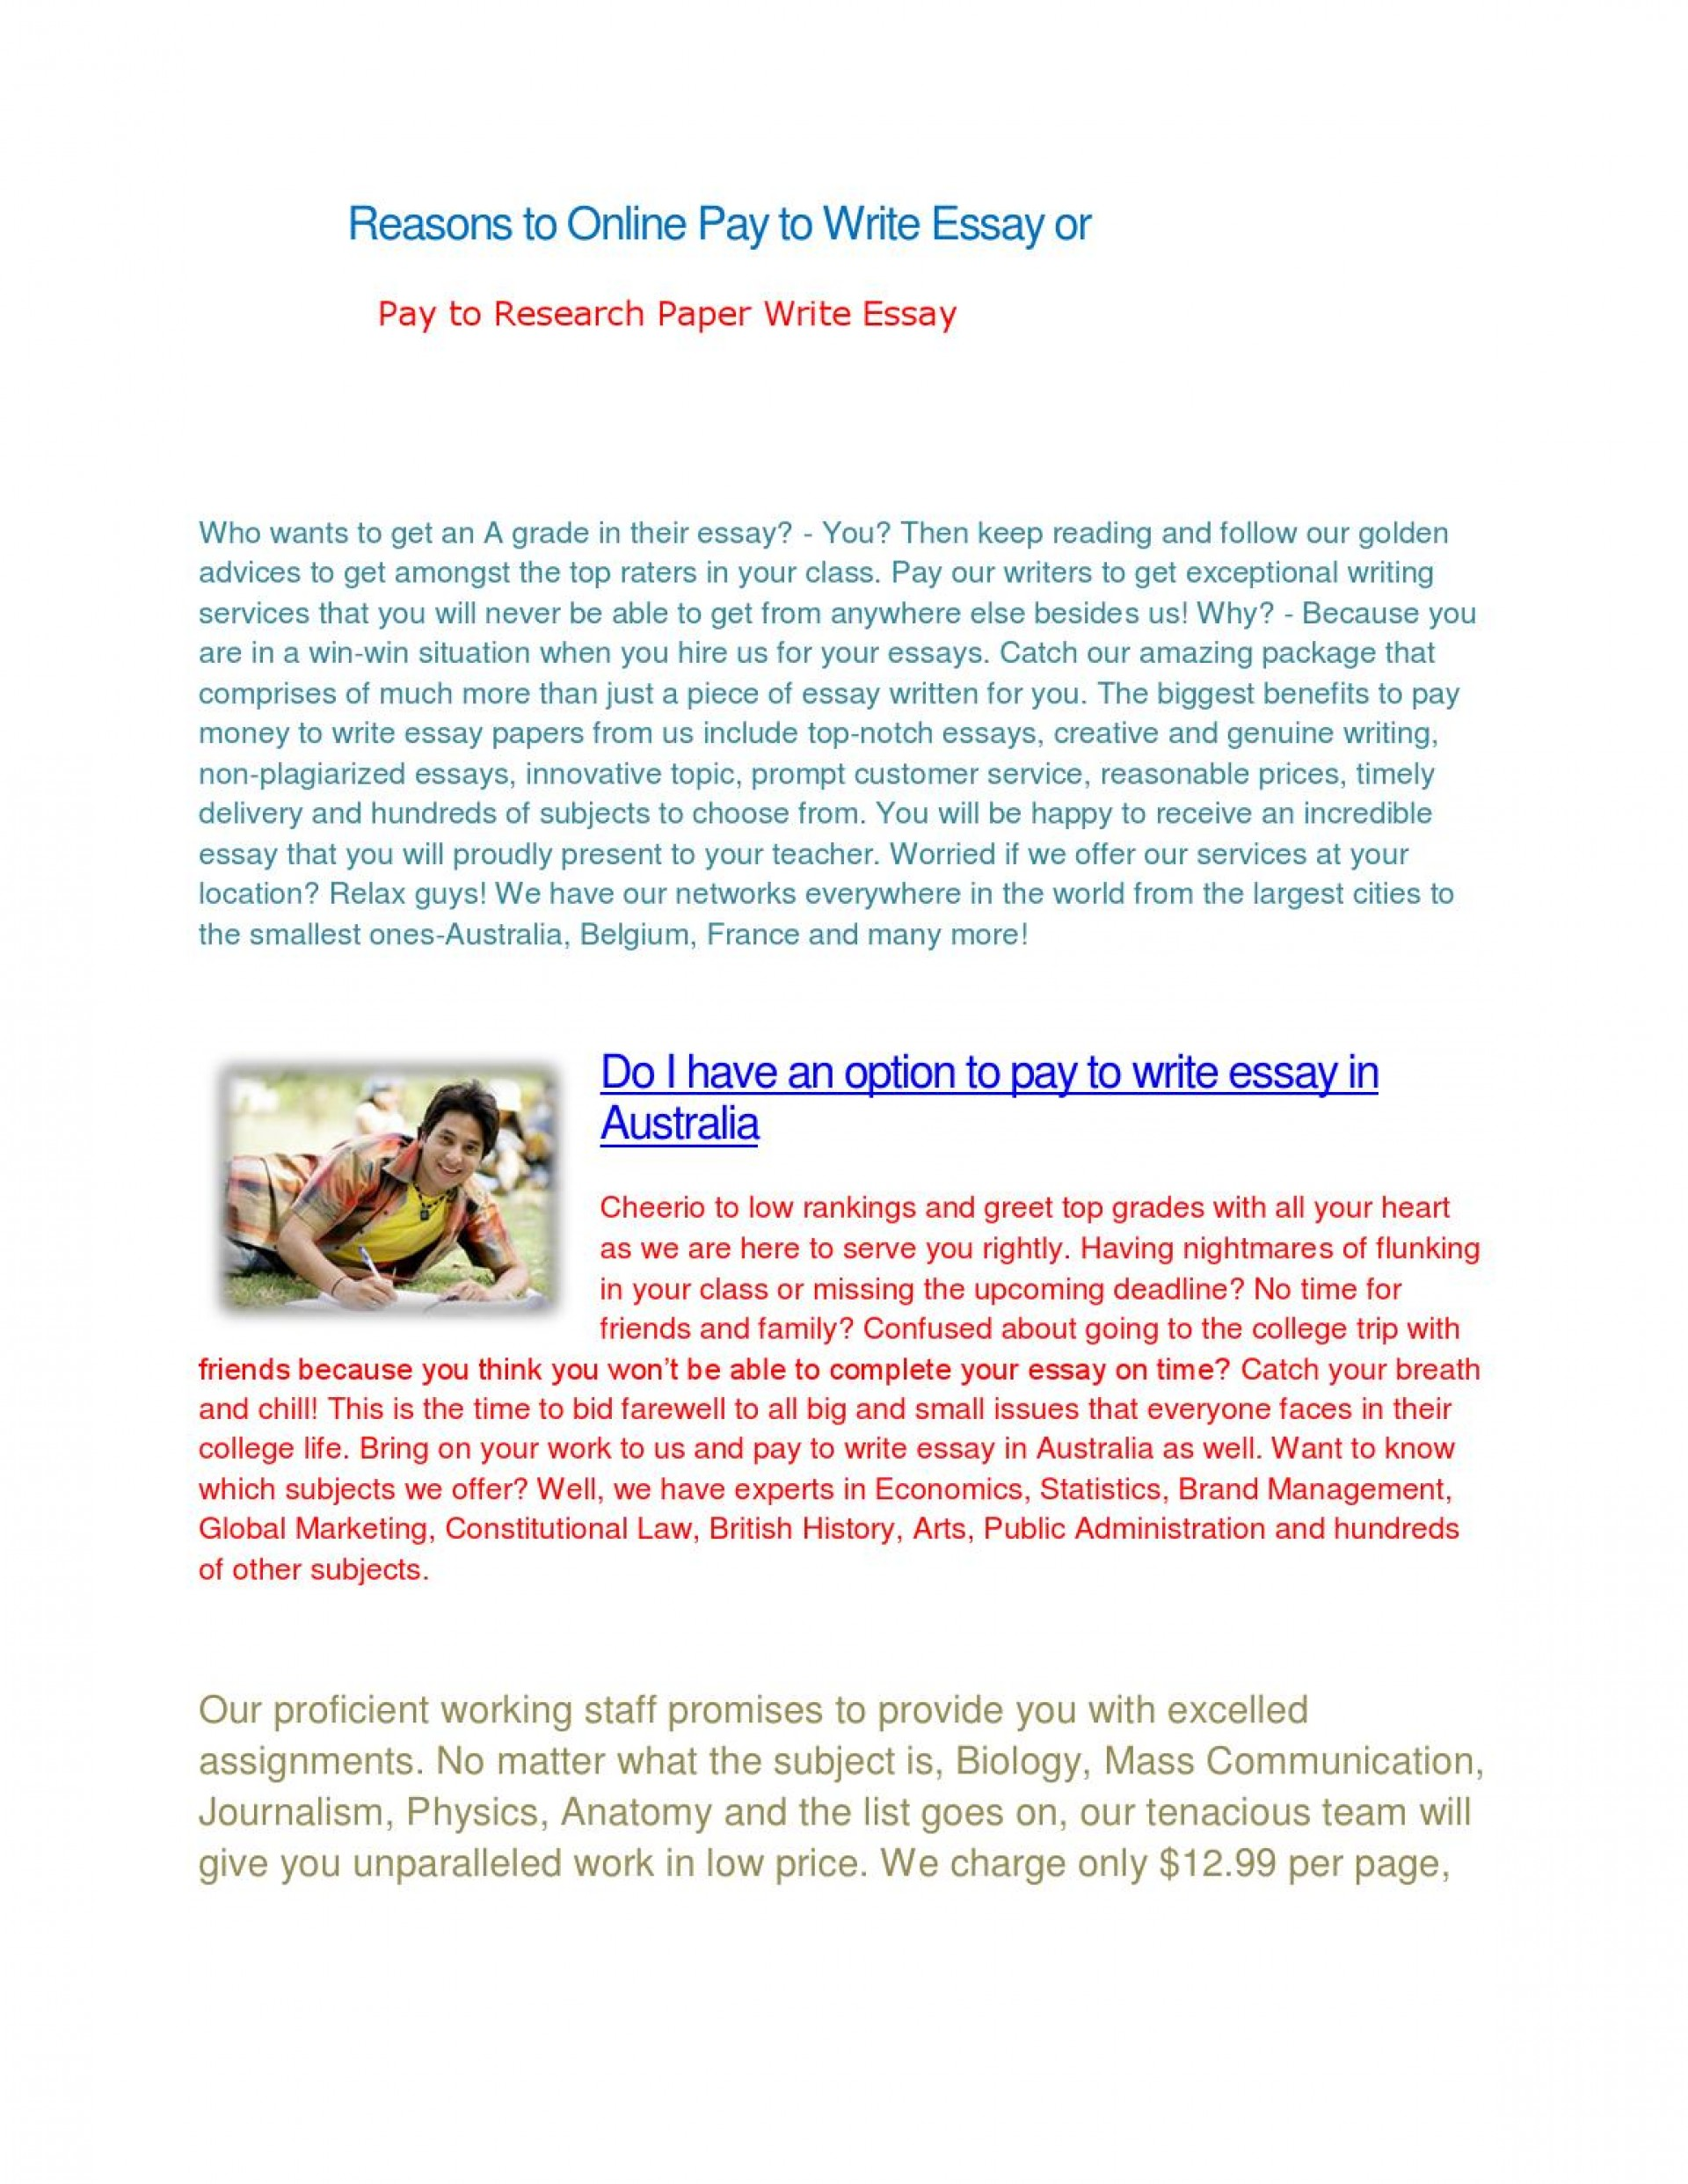 010 Research Paper Pay For Page 1 Excellent Equal Work In India Performance Writing 1920